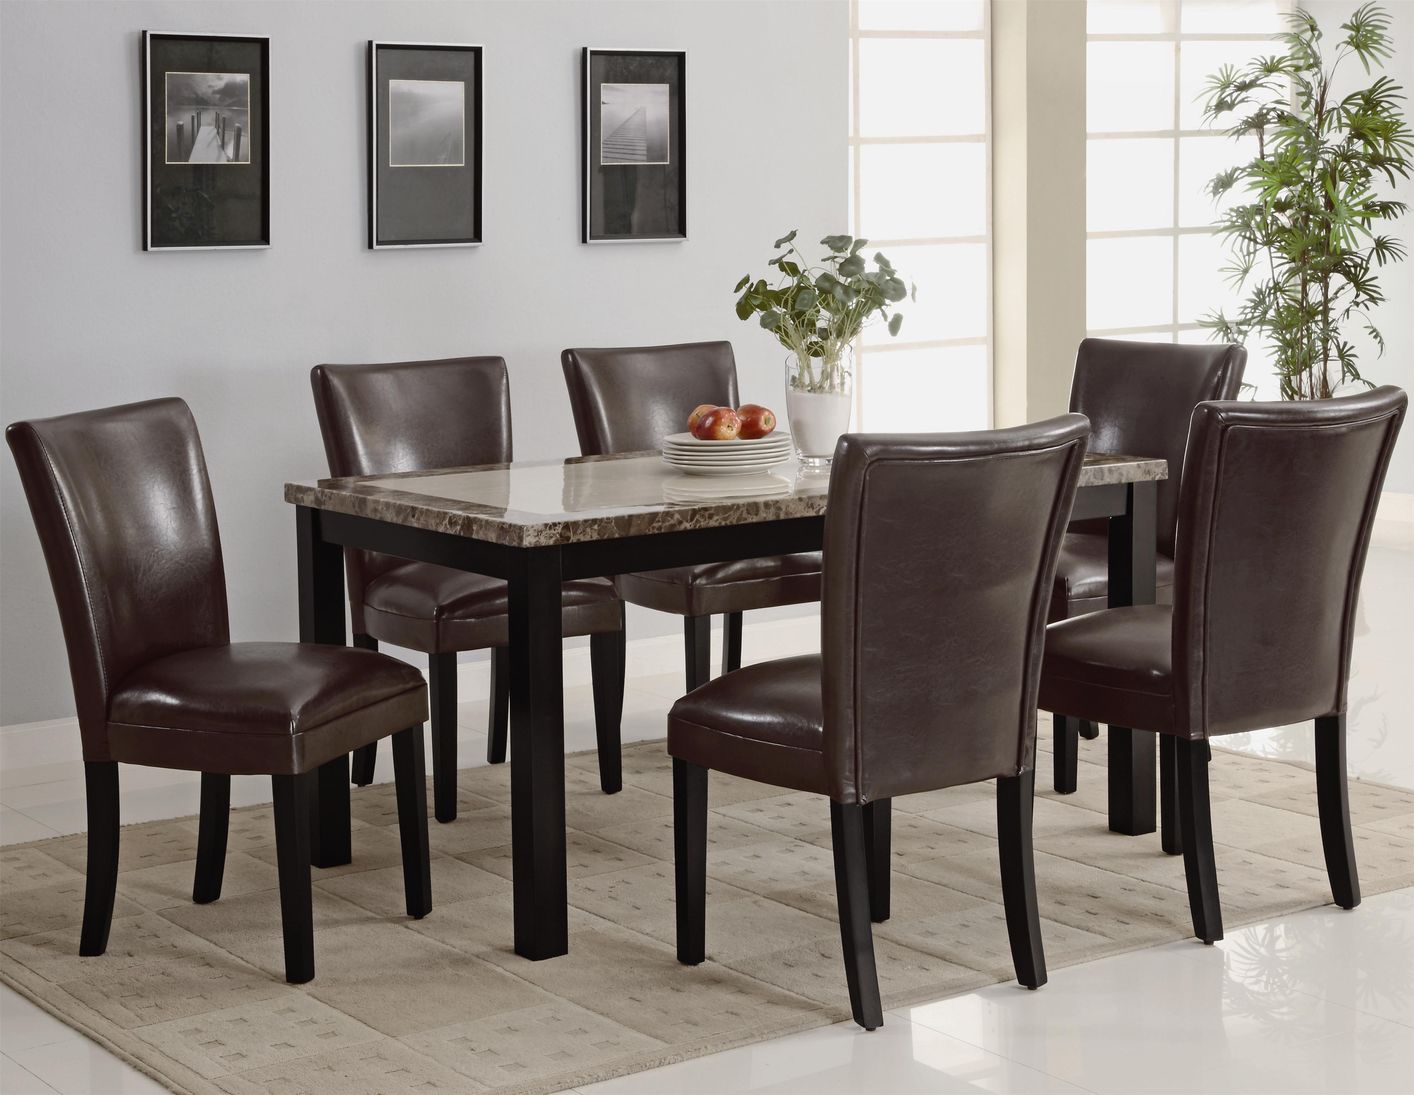 Coaster carter 102260 102263 brown wood and marble dining for Dark wood dining table